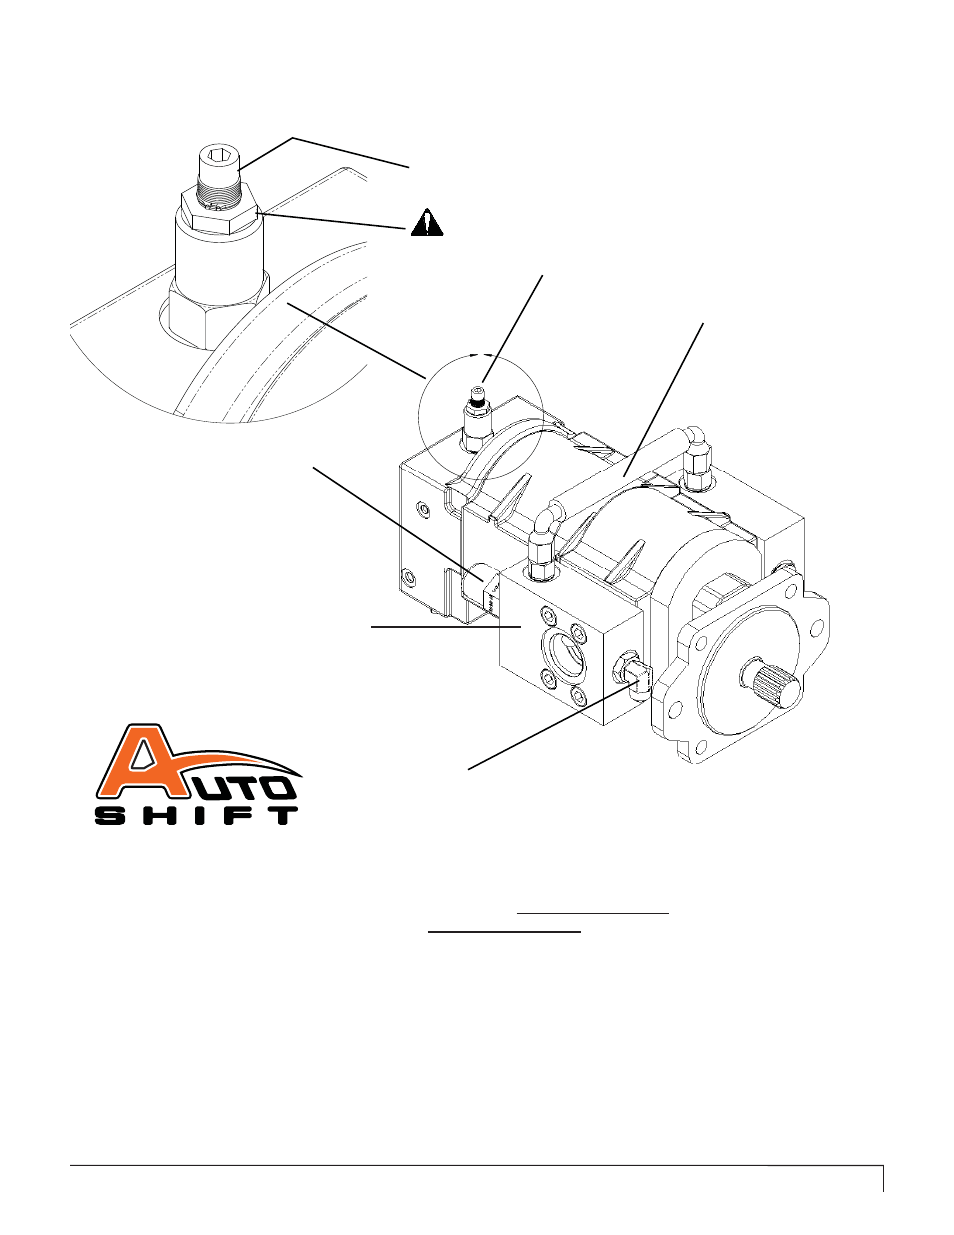 Two speed hydraulic motor information, Auto shift